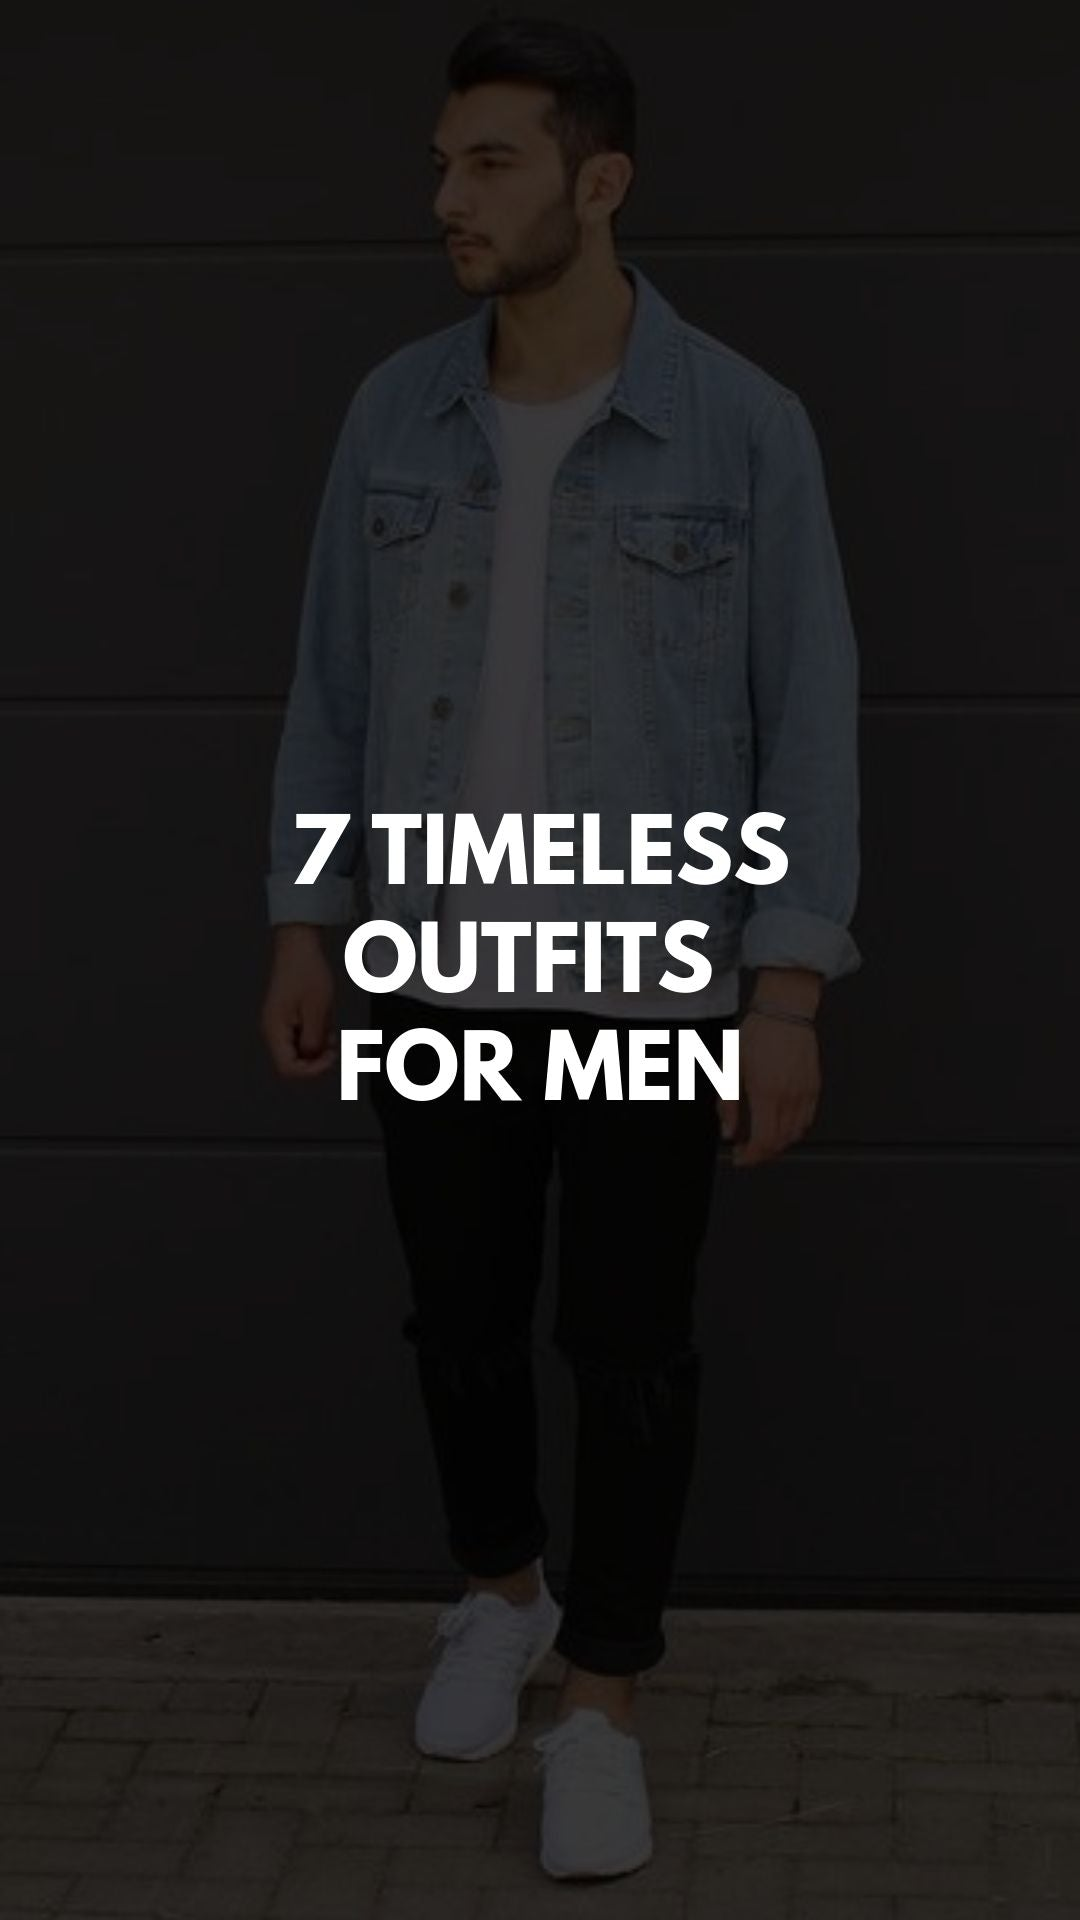 7 Timeless Outfits For Men